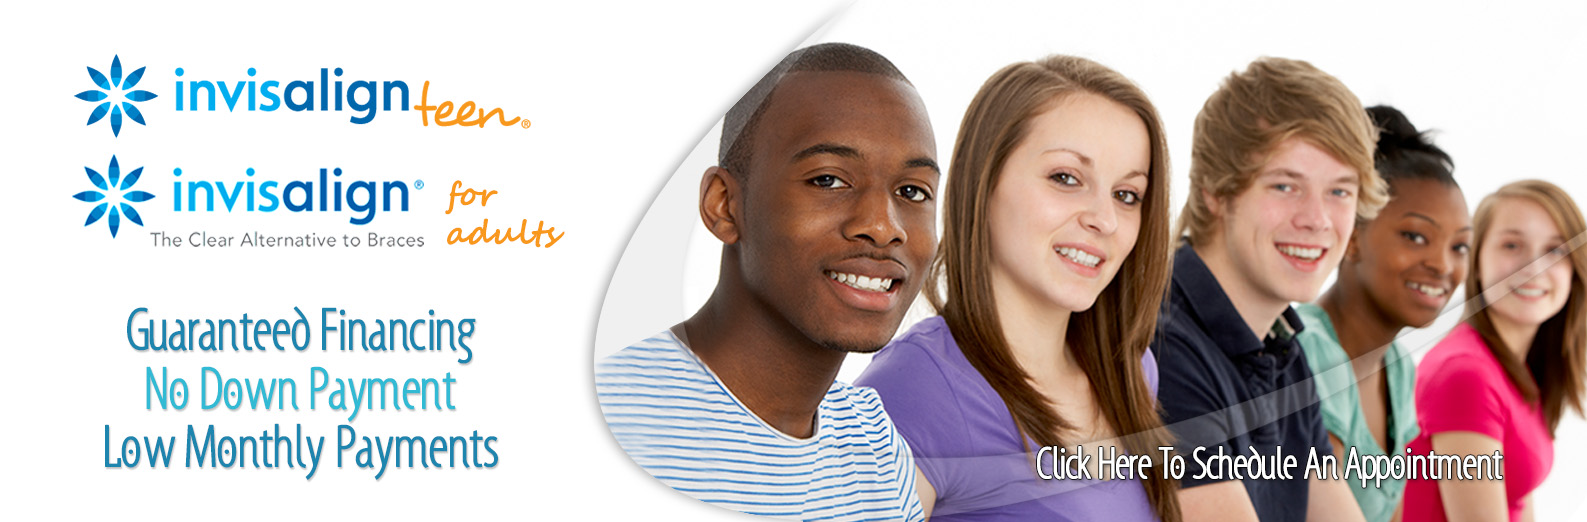 Invisalign Teen & Adults